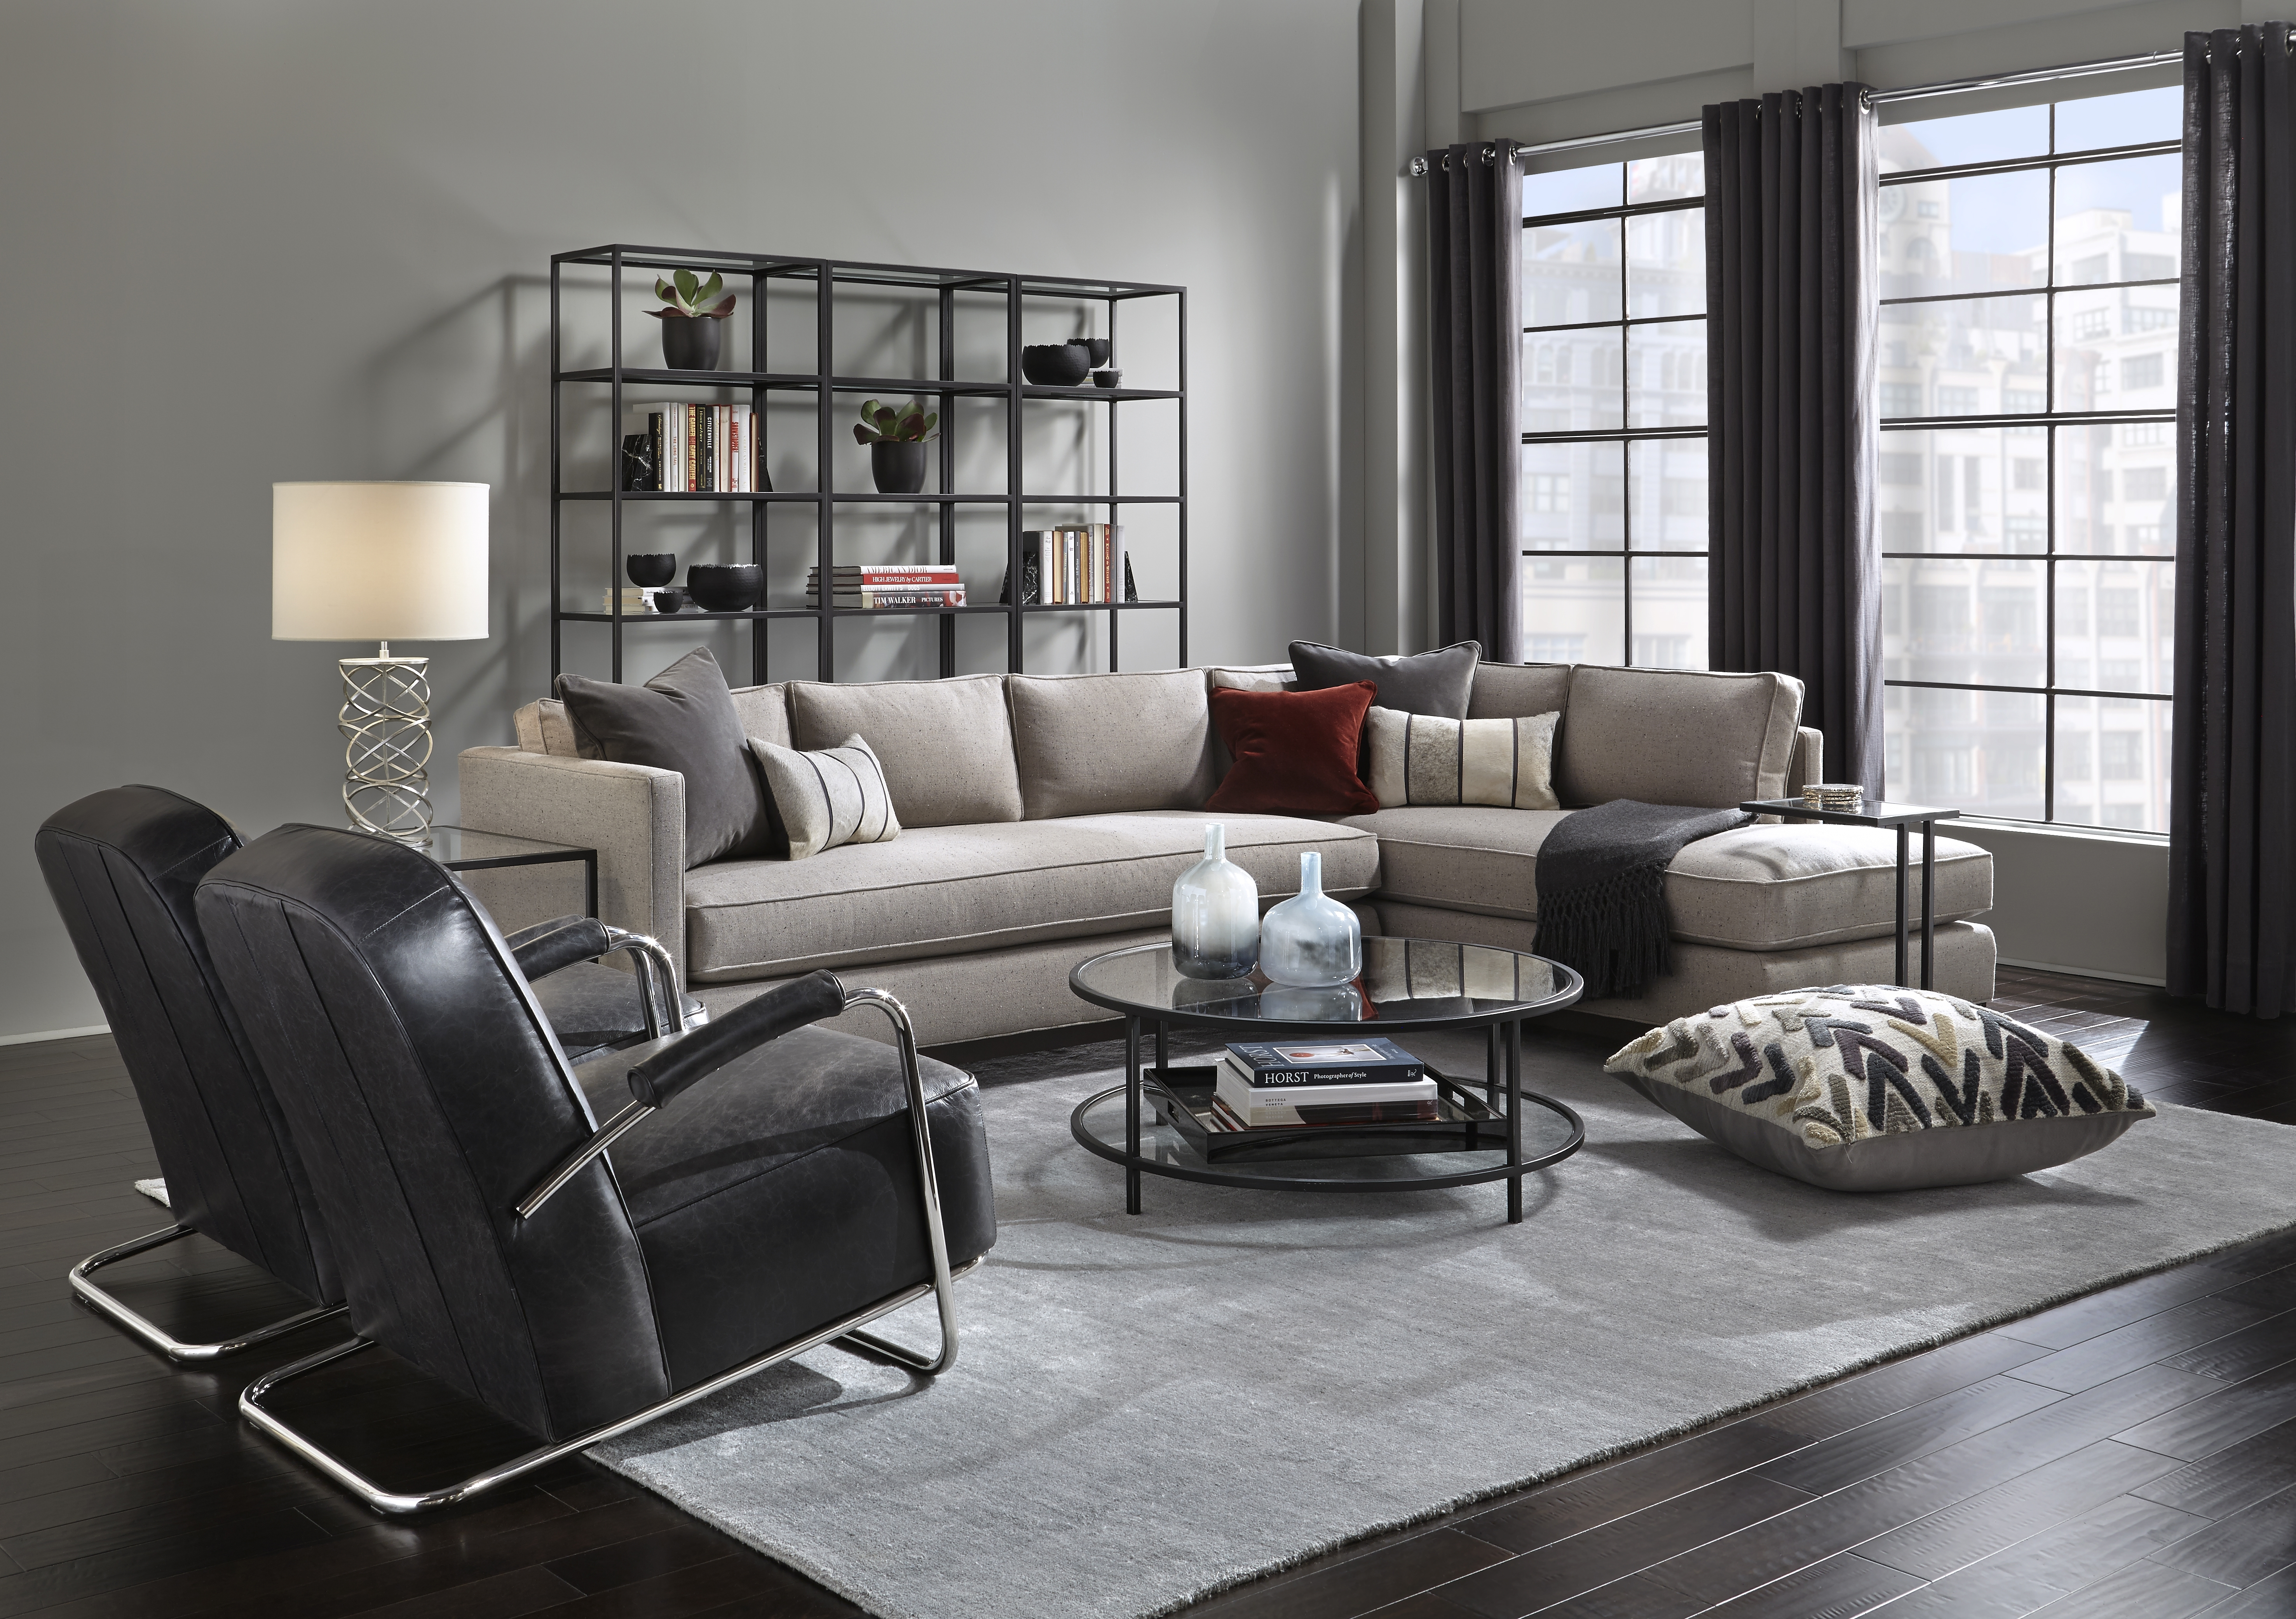 12 Designer-Picked Sofas For Every Budget, And People With Pets And regarding Restoration Hardware Sectional Sofas